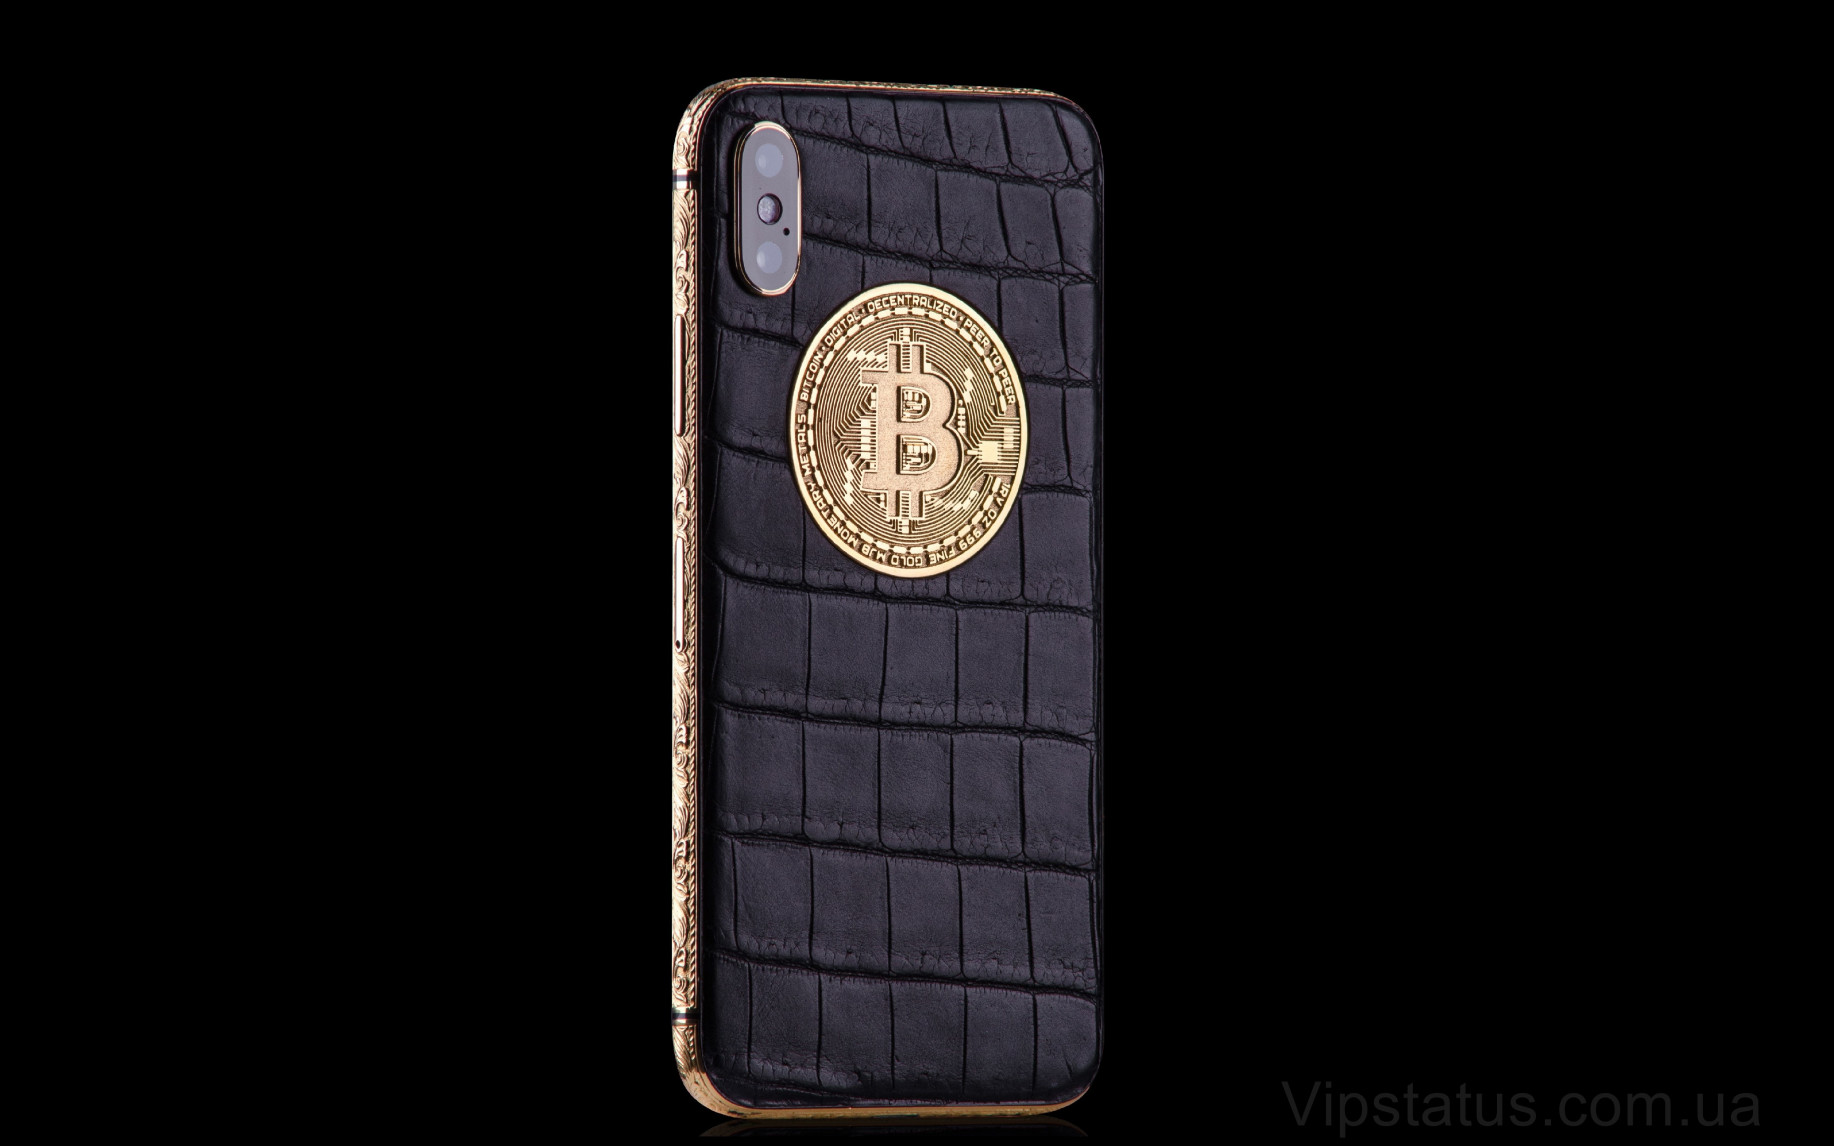 Elite Great Bitcoin IPHONE 11 PRO MAX 512 GB Great Bitcoin IPHONE 11 PRO MAX 512 GB image 1